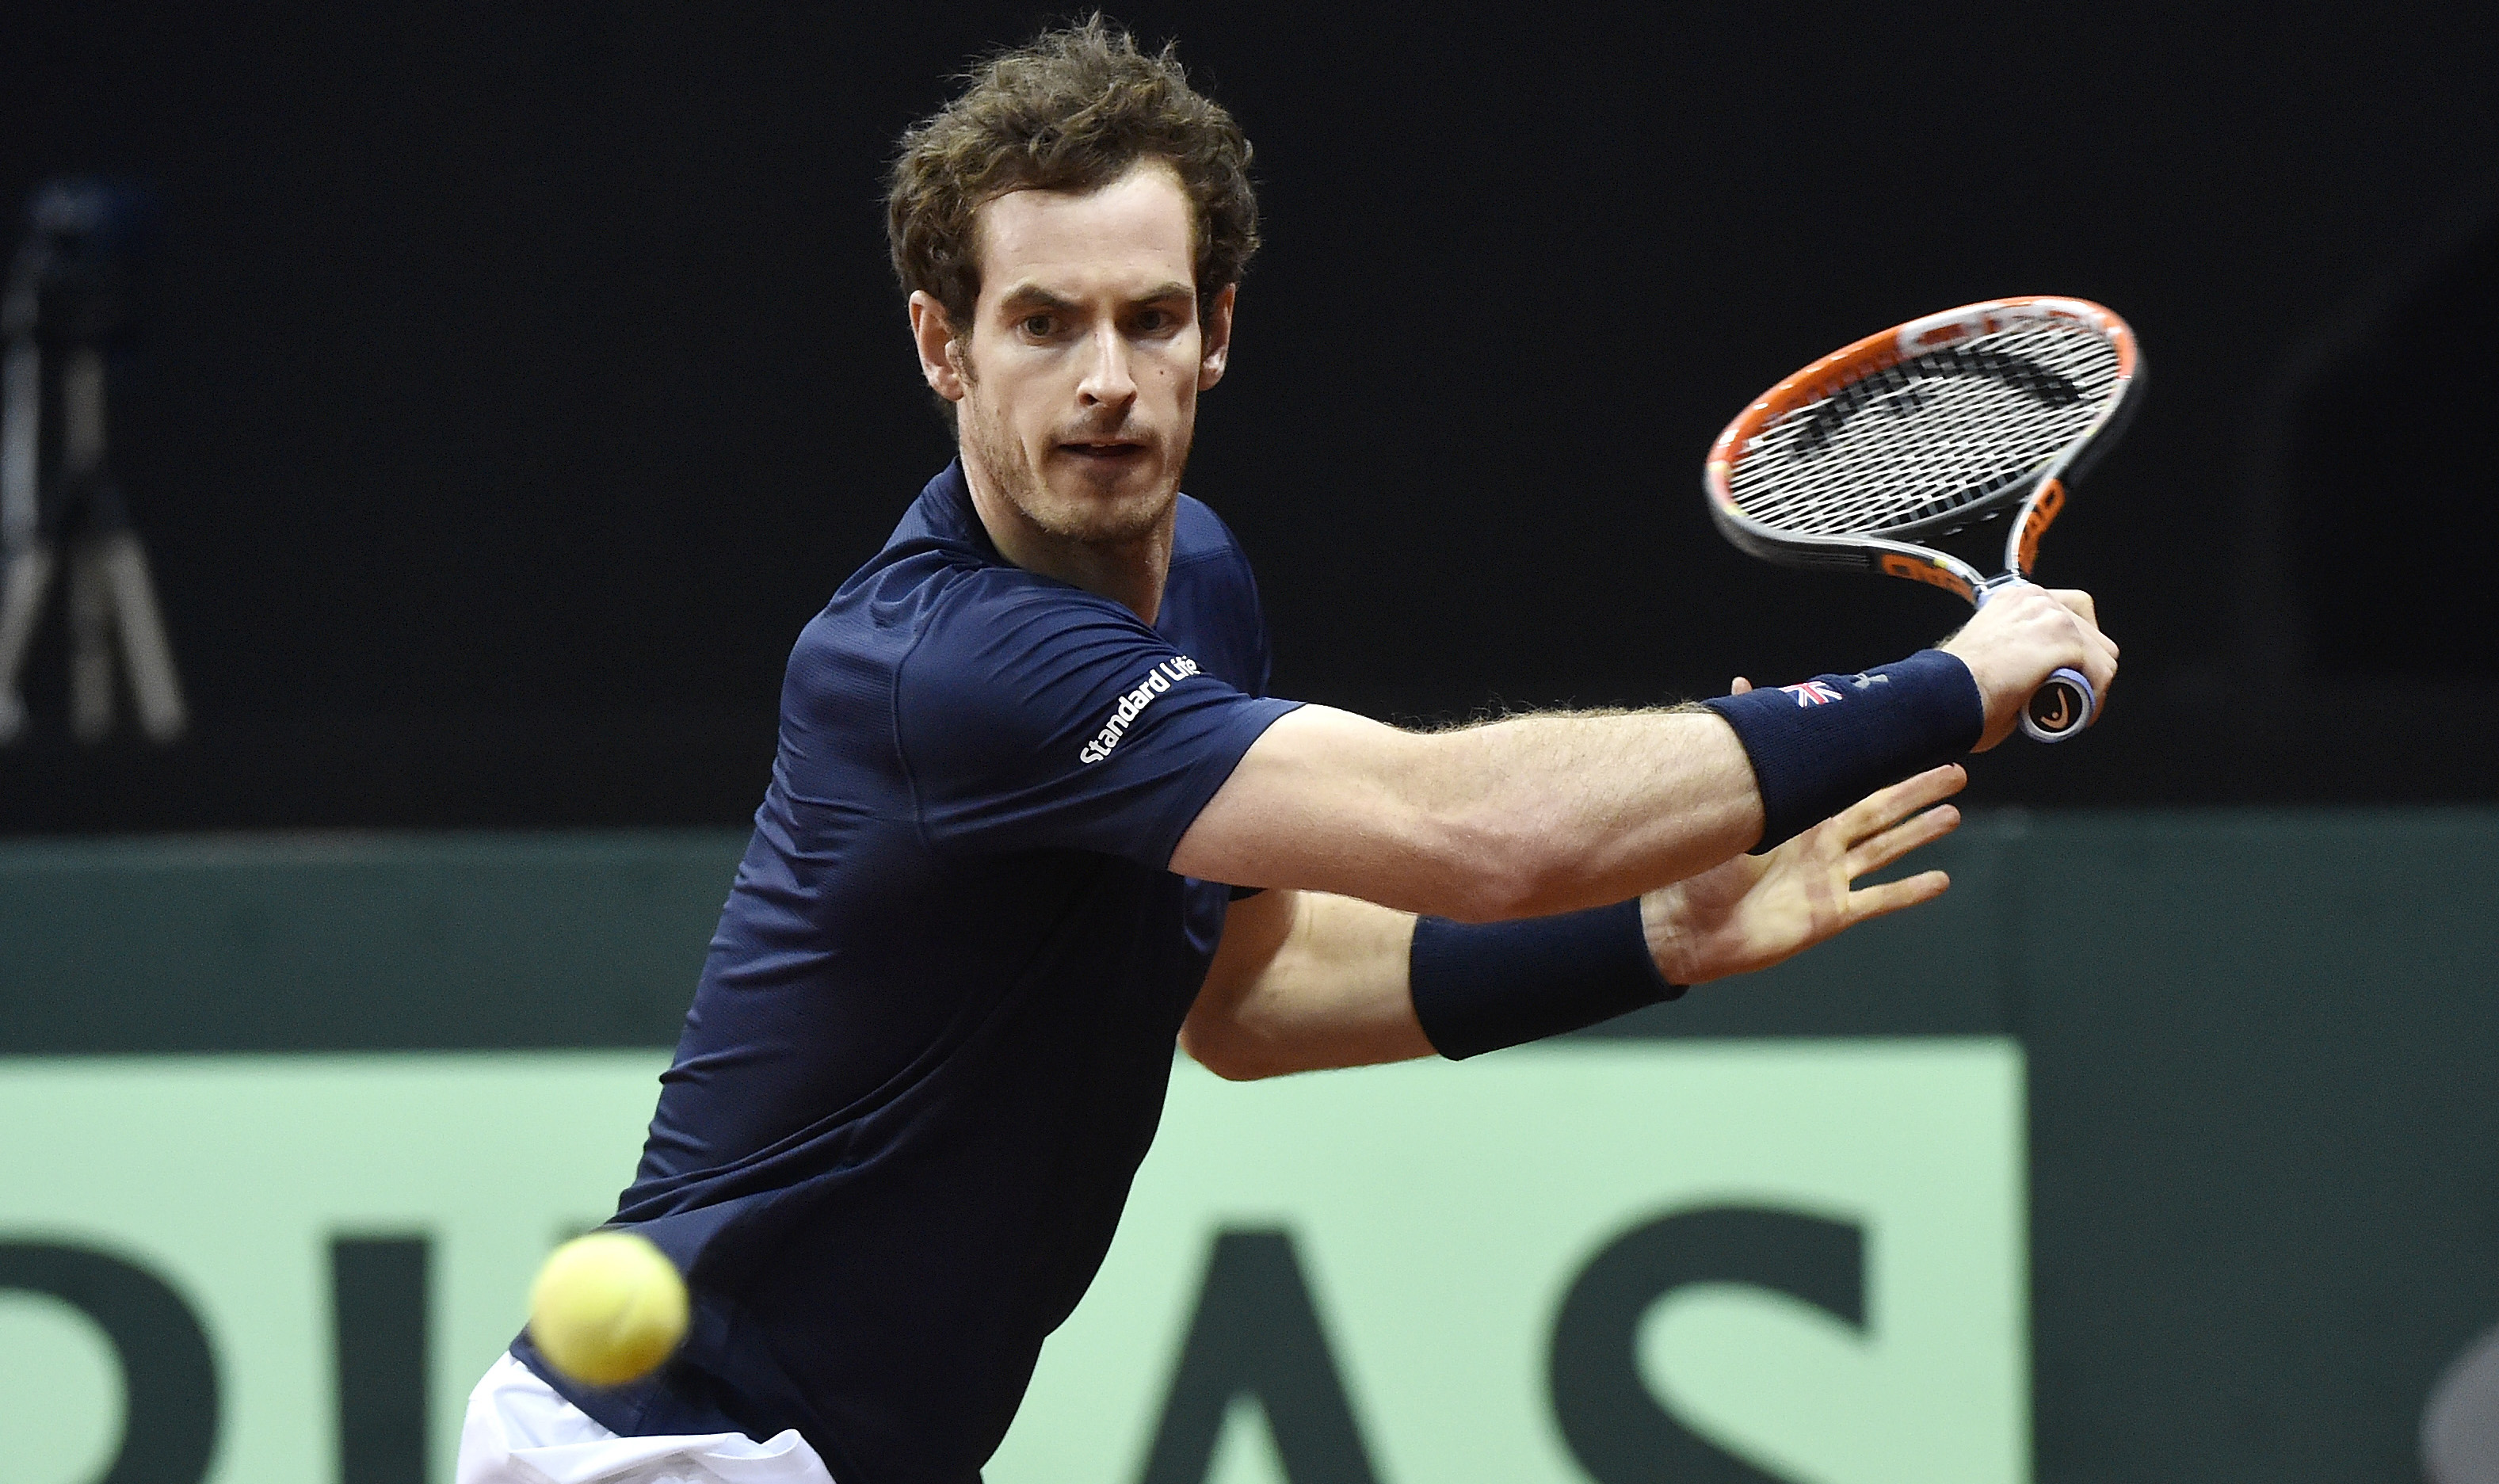 Andy Murray claims Friday's shot of the day at the 2015 Davis Cup Final